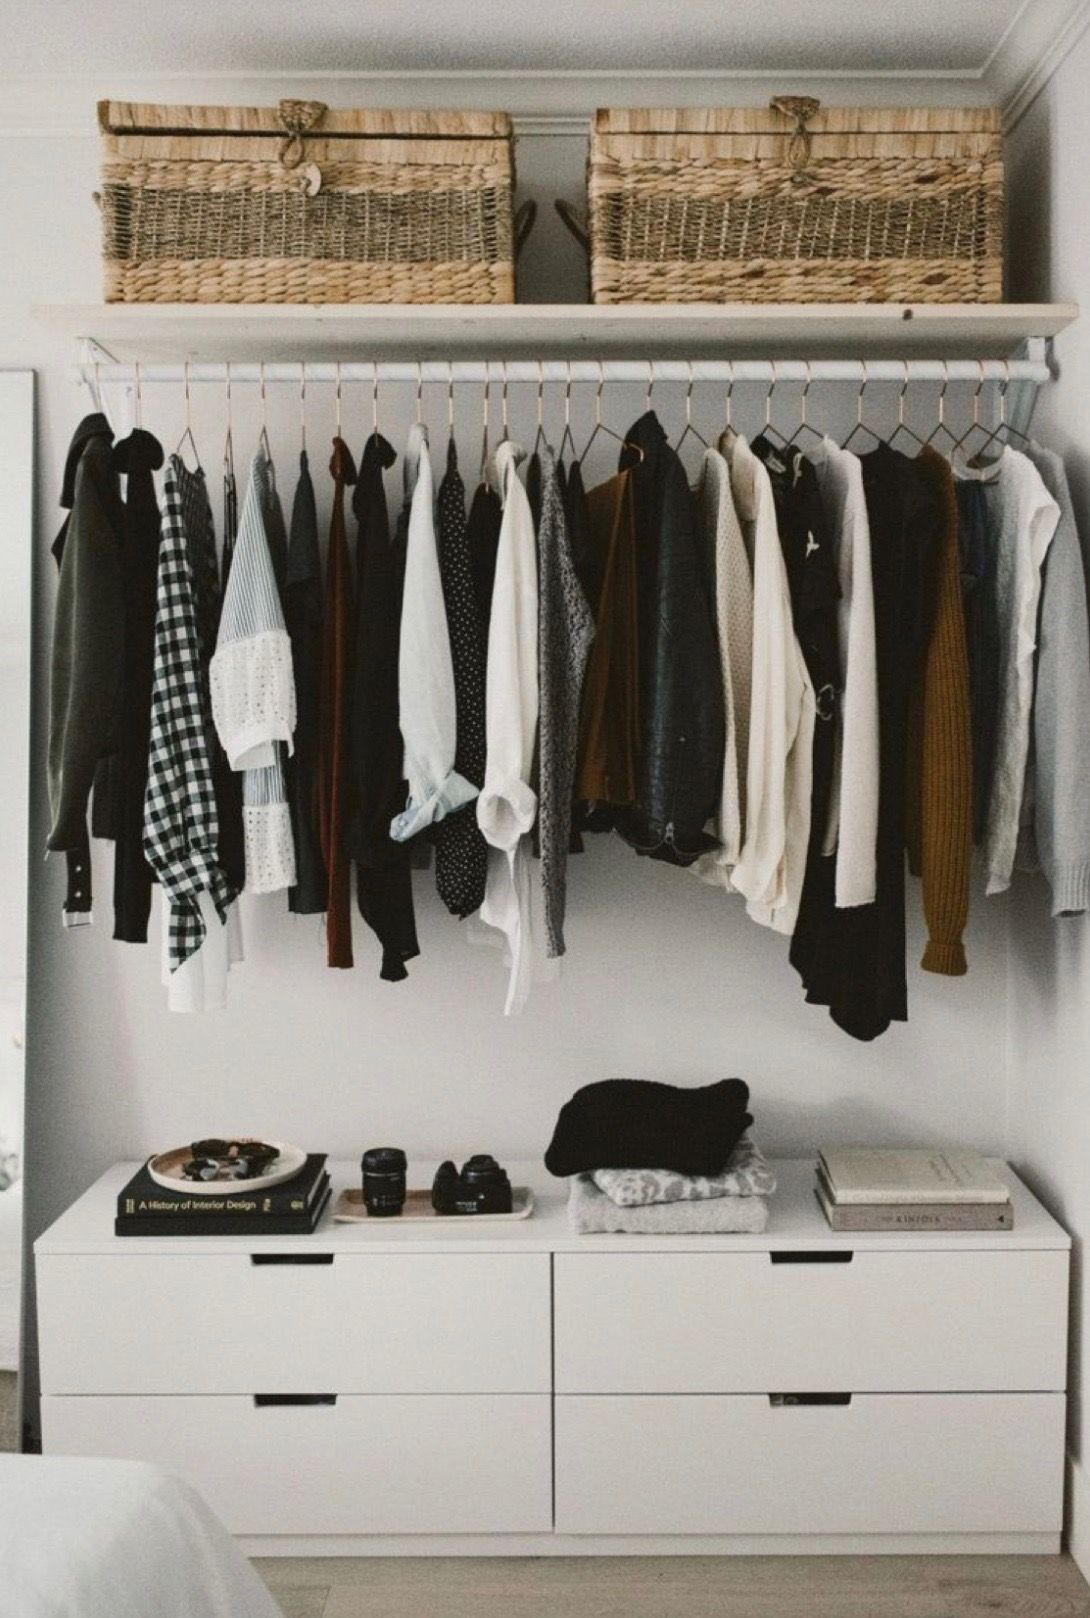 Pin By Carrie On Bedroom Design Closet Concepts Bedroom Organization Closet Small Bedroom Decor